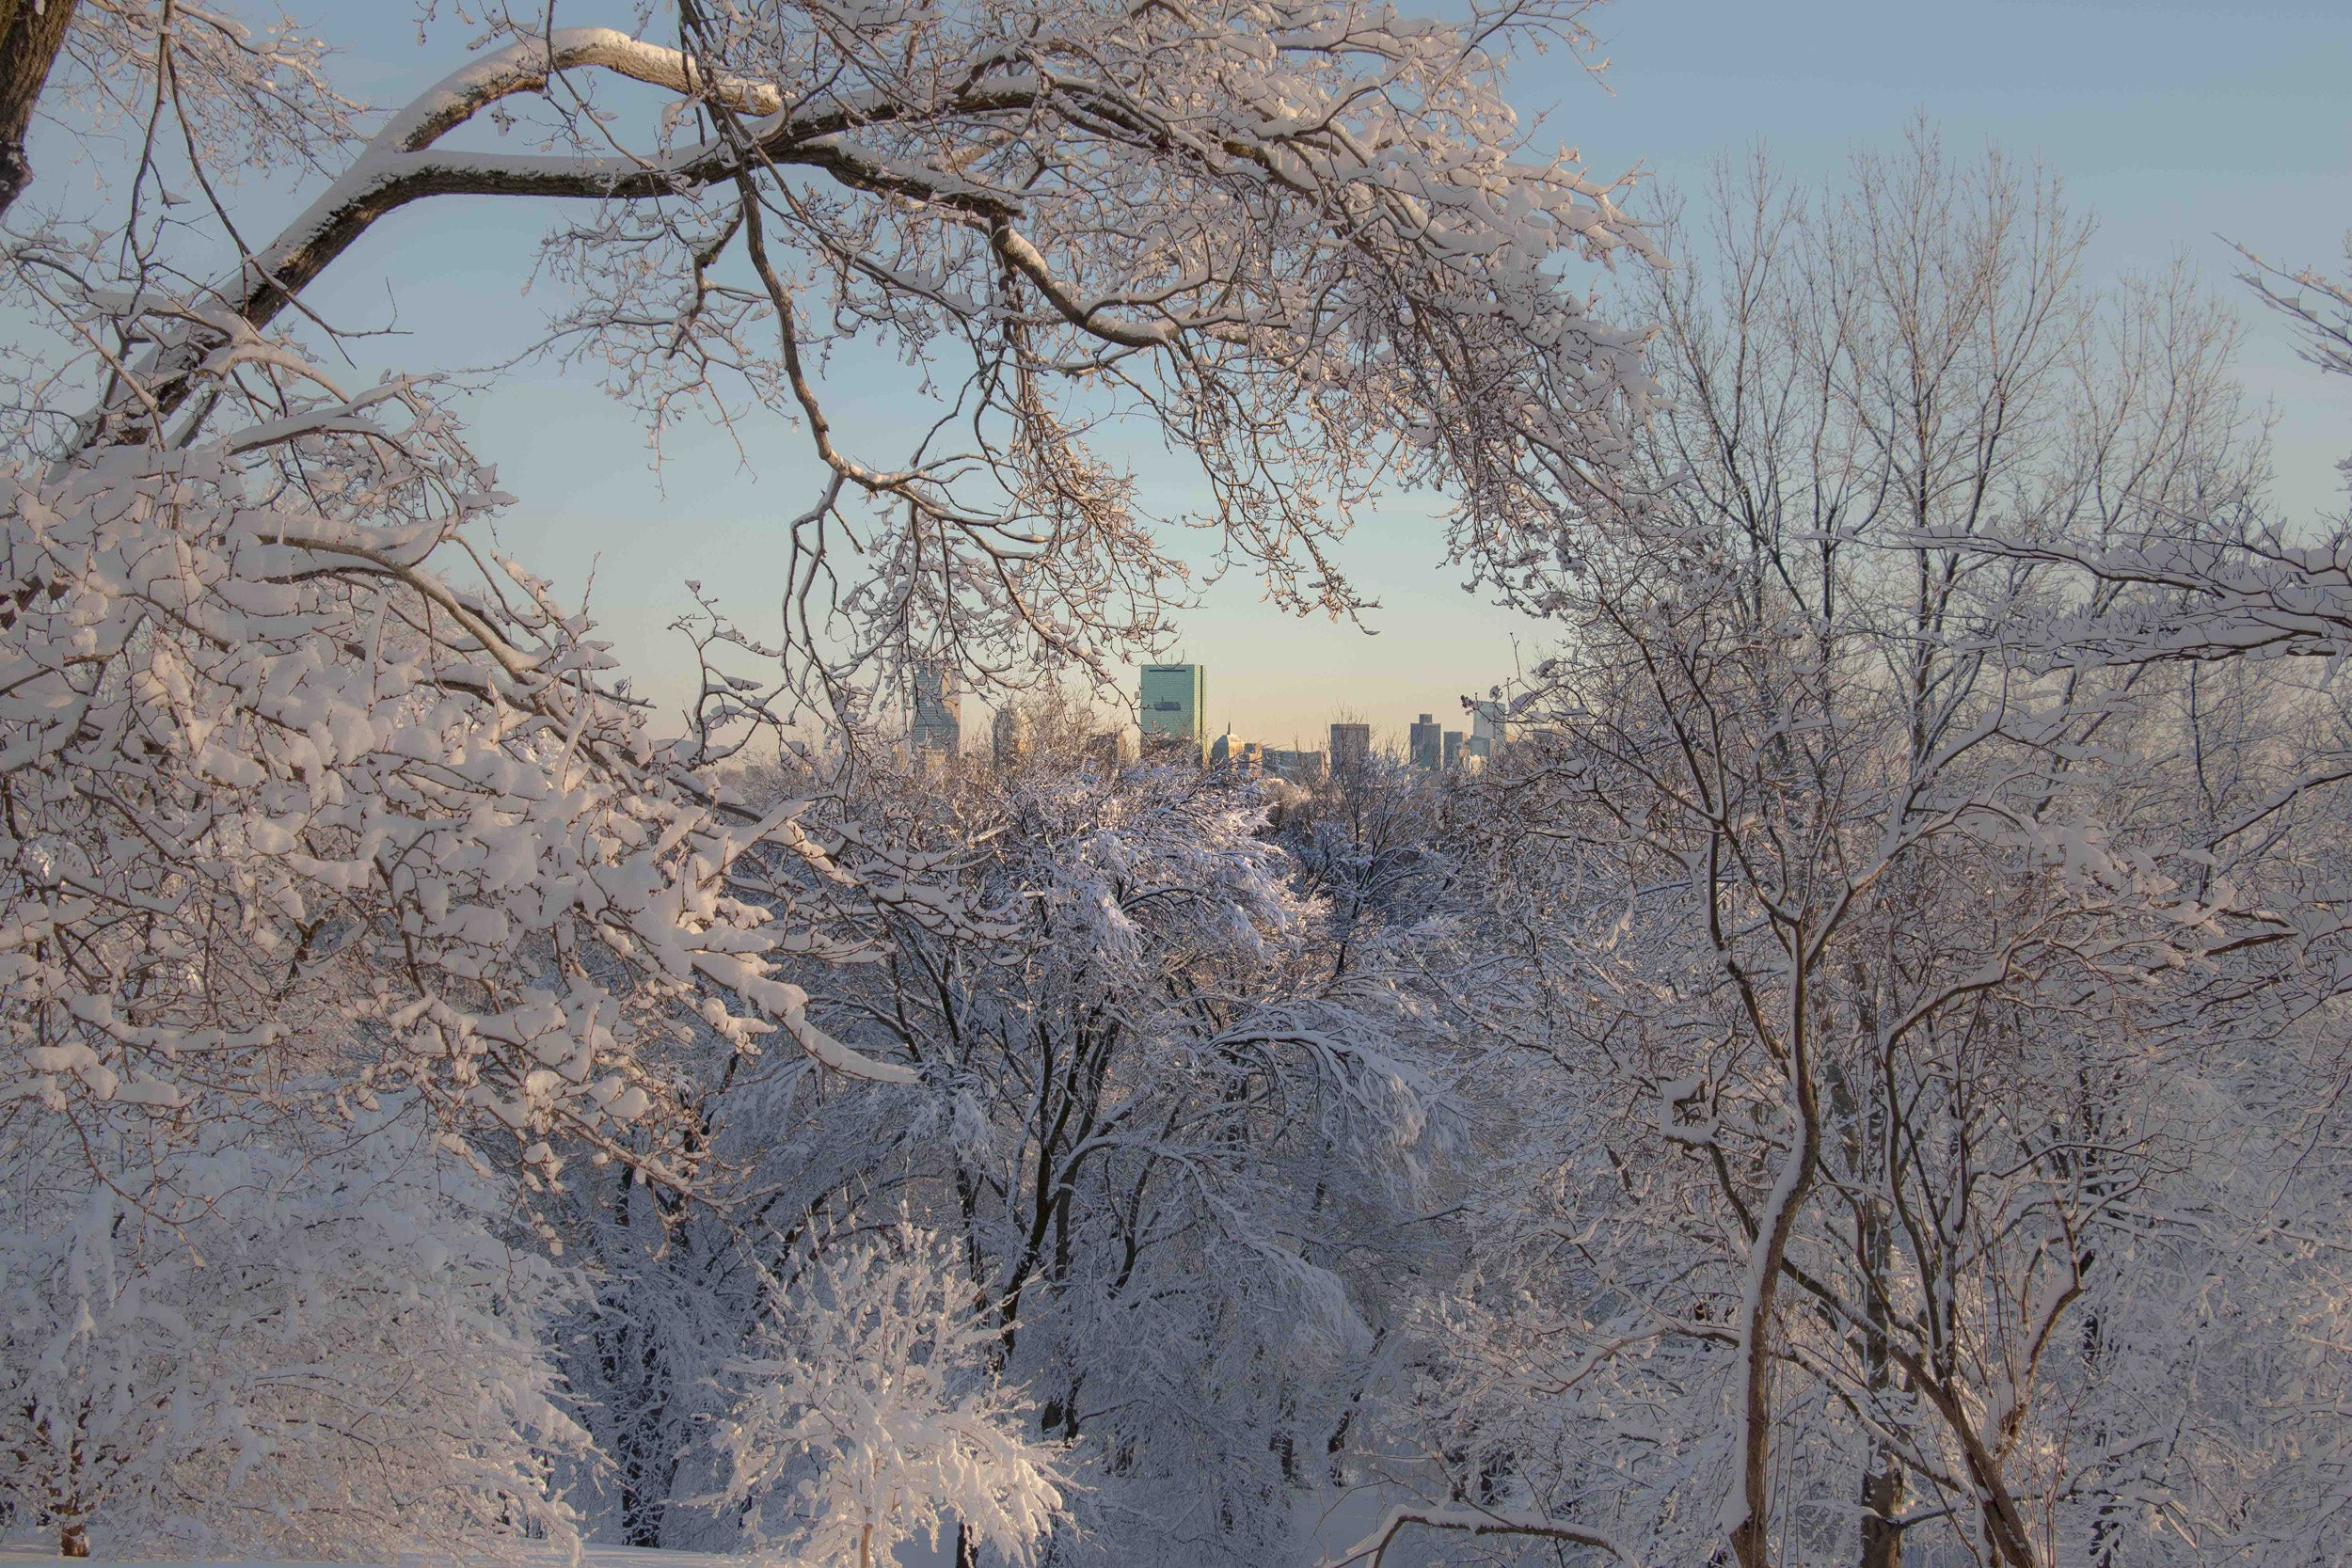 View of Boston skyline from snowy Arnold Arboretum.